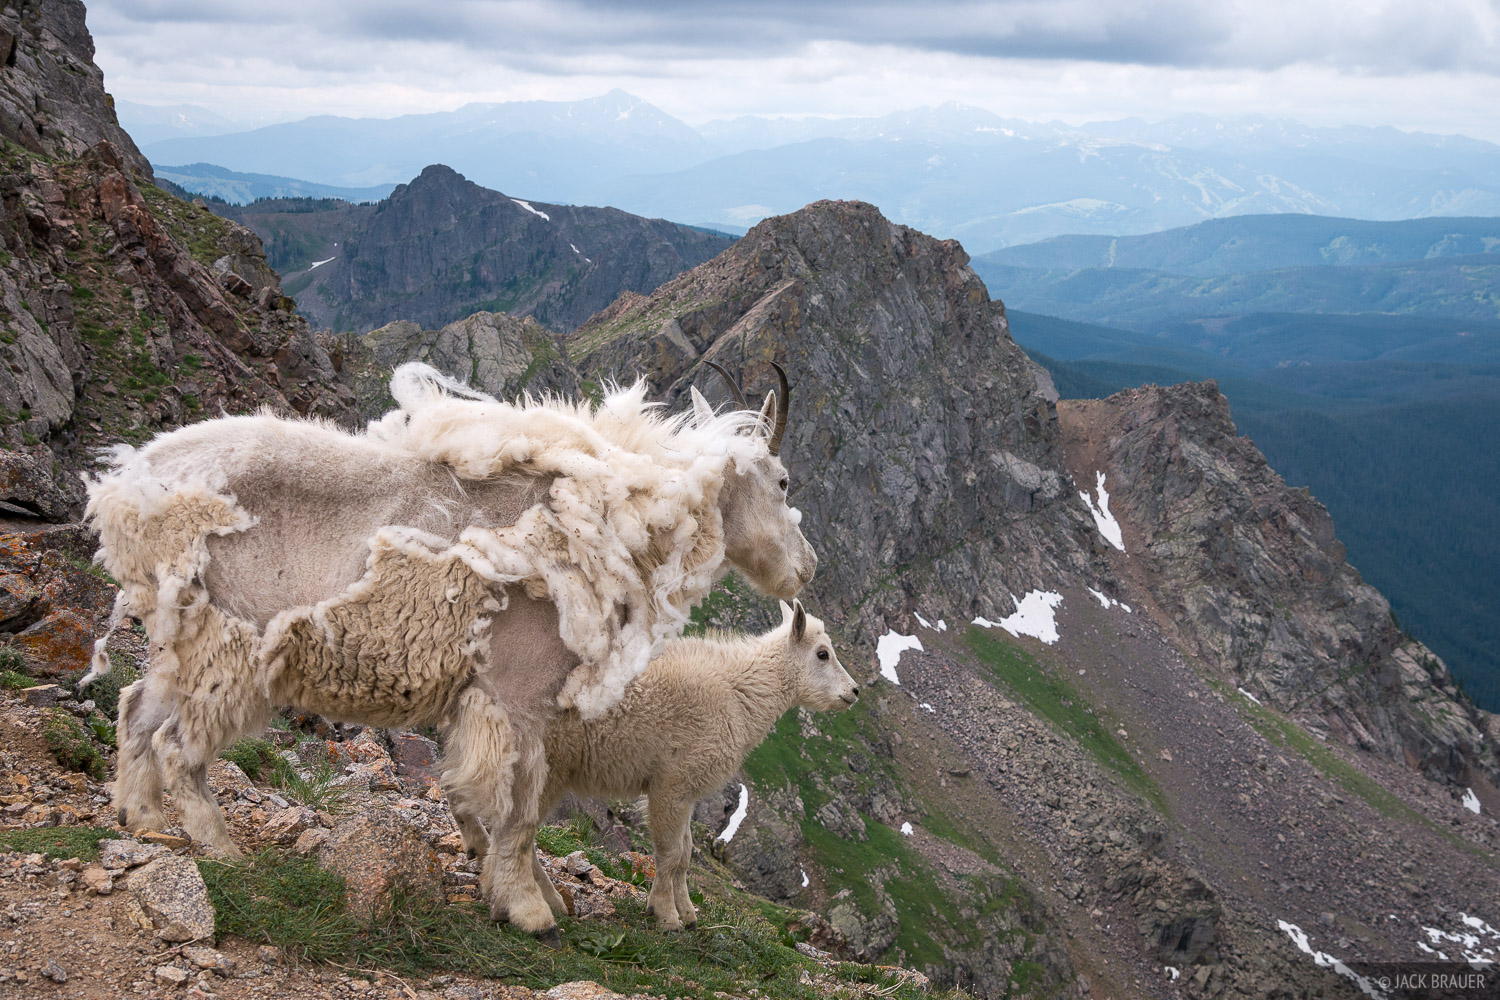 Colorado, Gore Range, mountain goat, Eagles Nest Wilderness, Kneeknocker Pass, Vail, photo